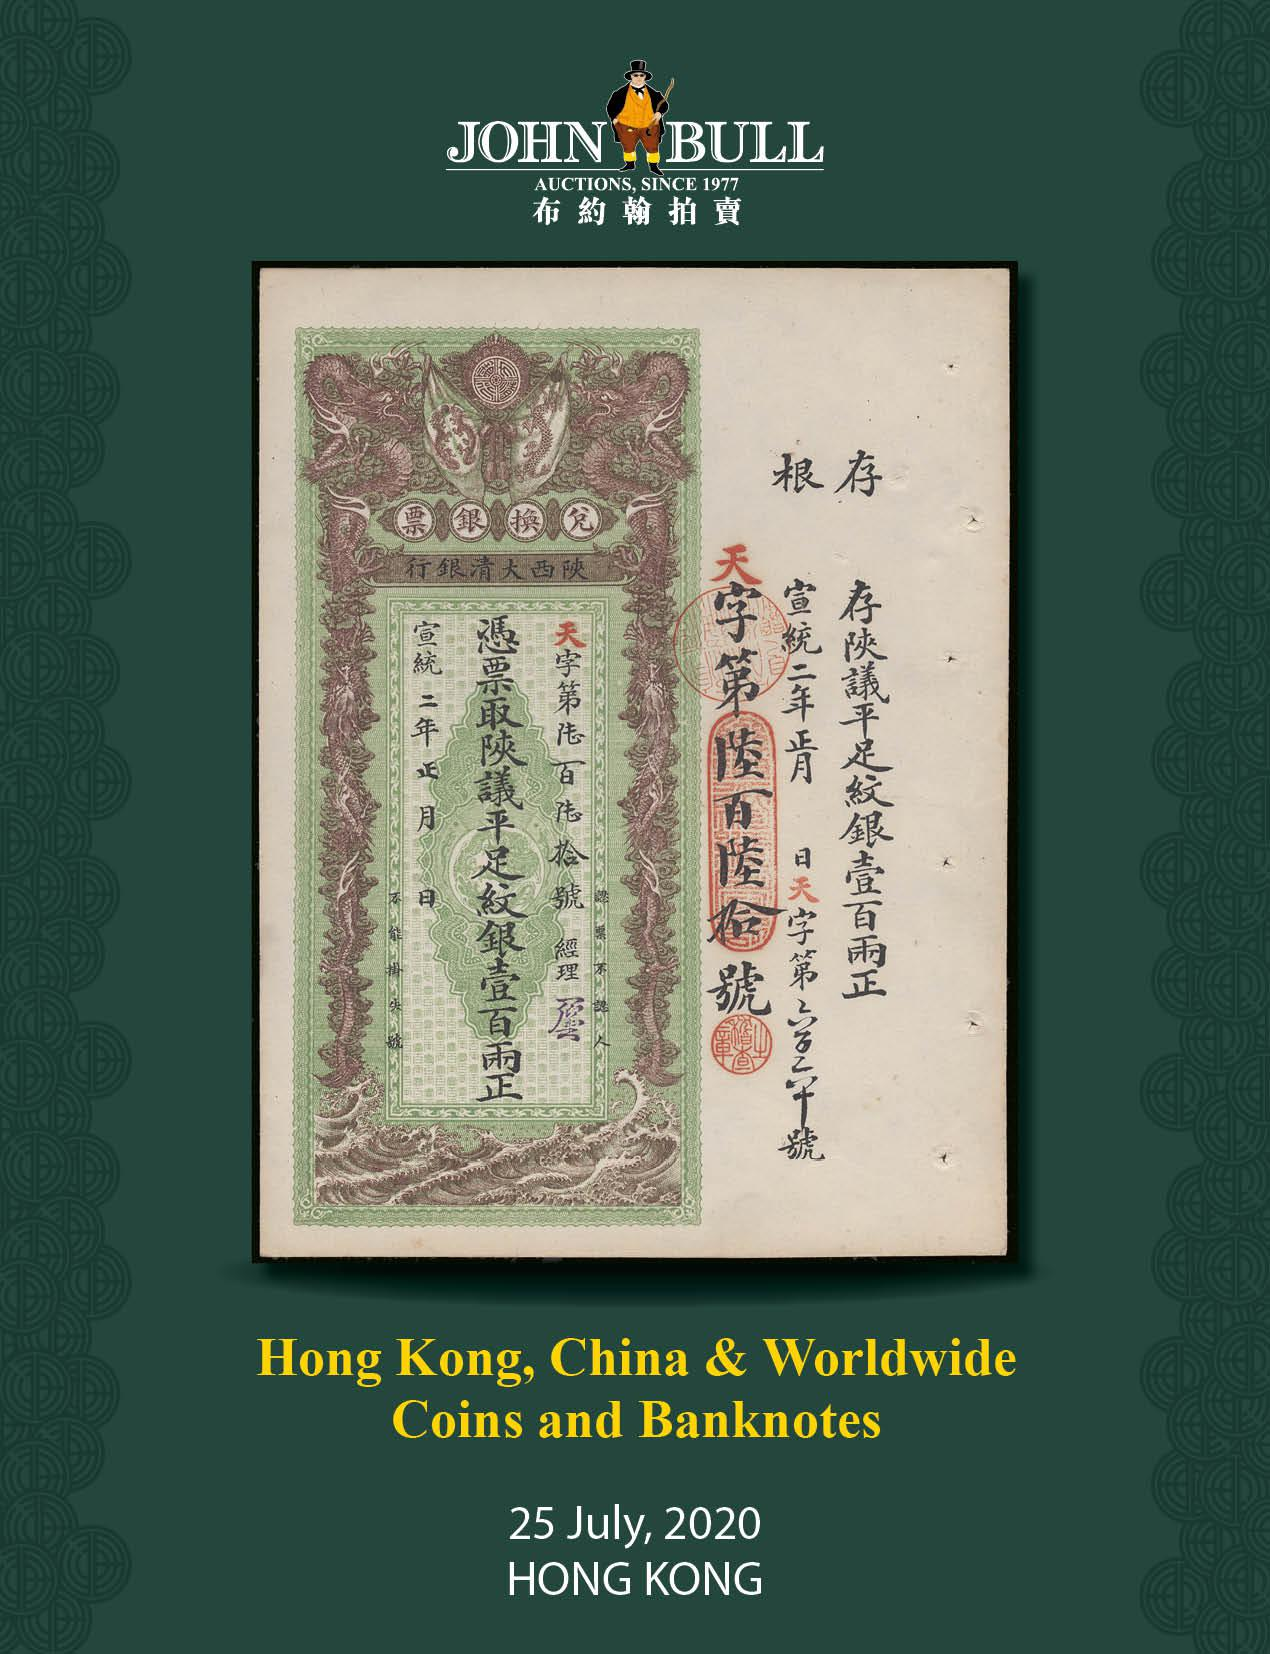 Hong Kong, China & Worldwide Coins and Banknotes